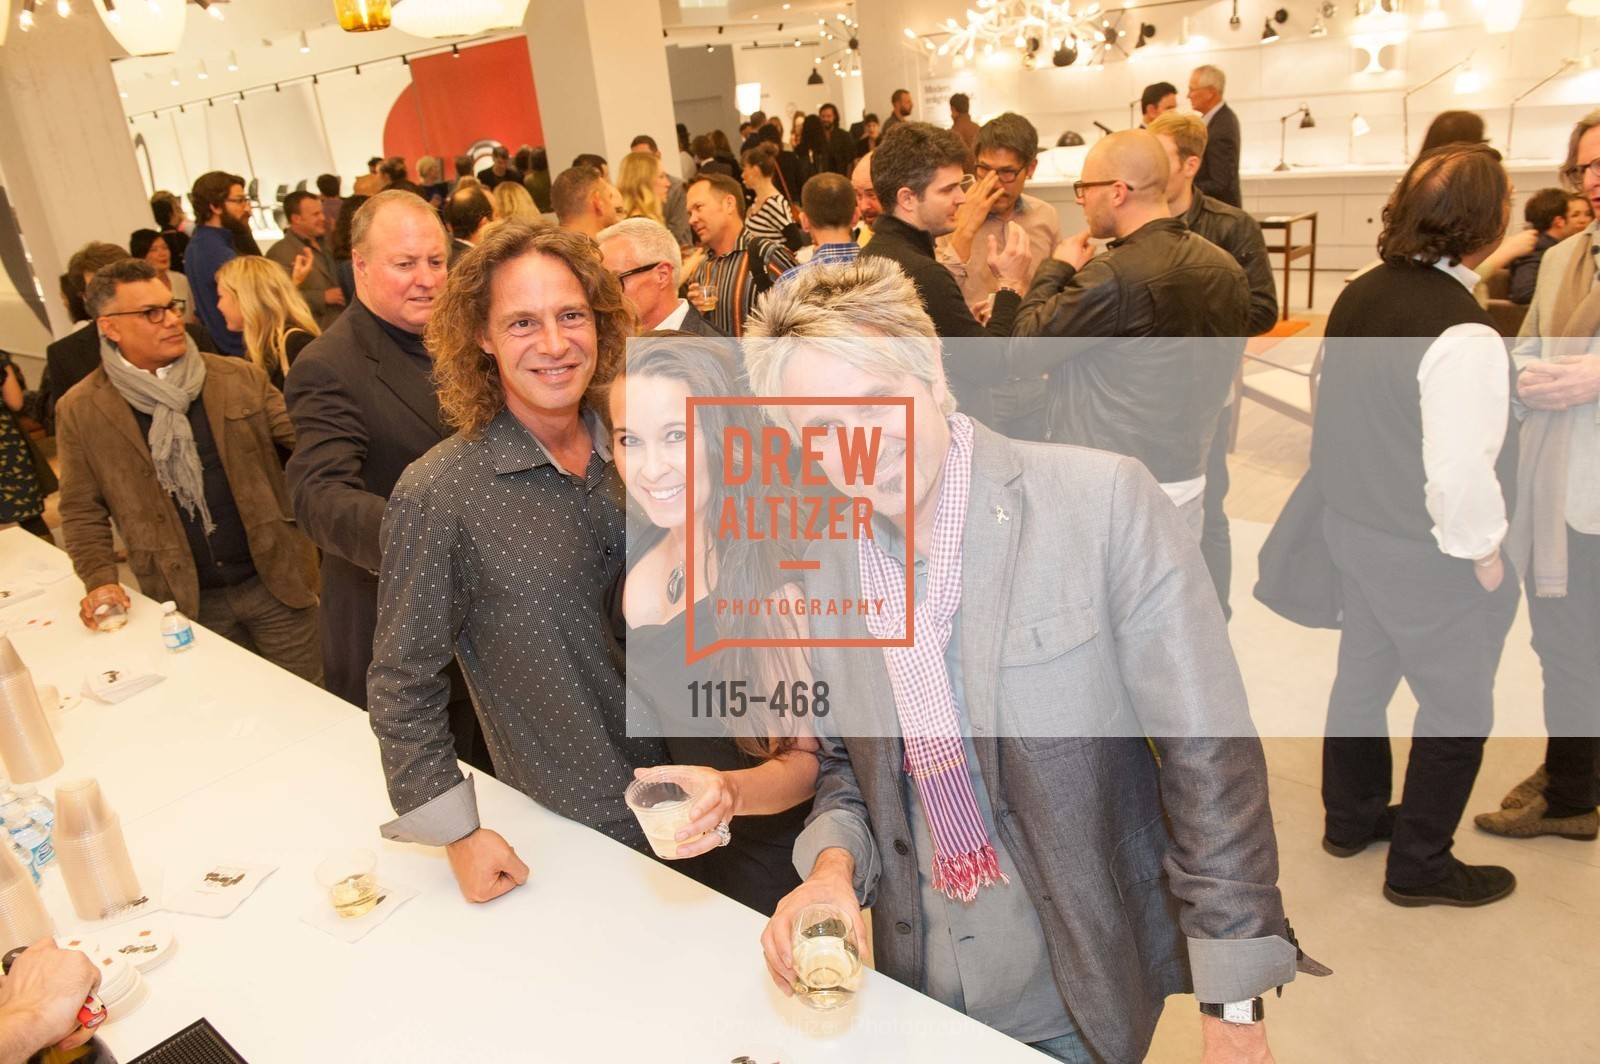 Christoph Opperman, Carla Biondi, Shelley Trew, DESIGN WITHIN REACH Studio Opening, US. US, January 21st, 2014,Drew Altizer, Drew Altizer Photography, full-service event agency, private events, San Francisco photographer, photographer California